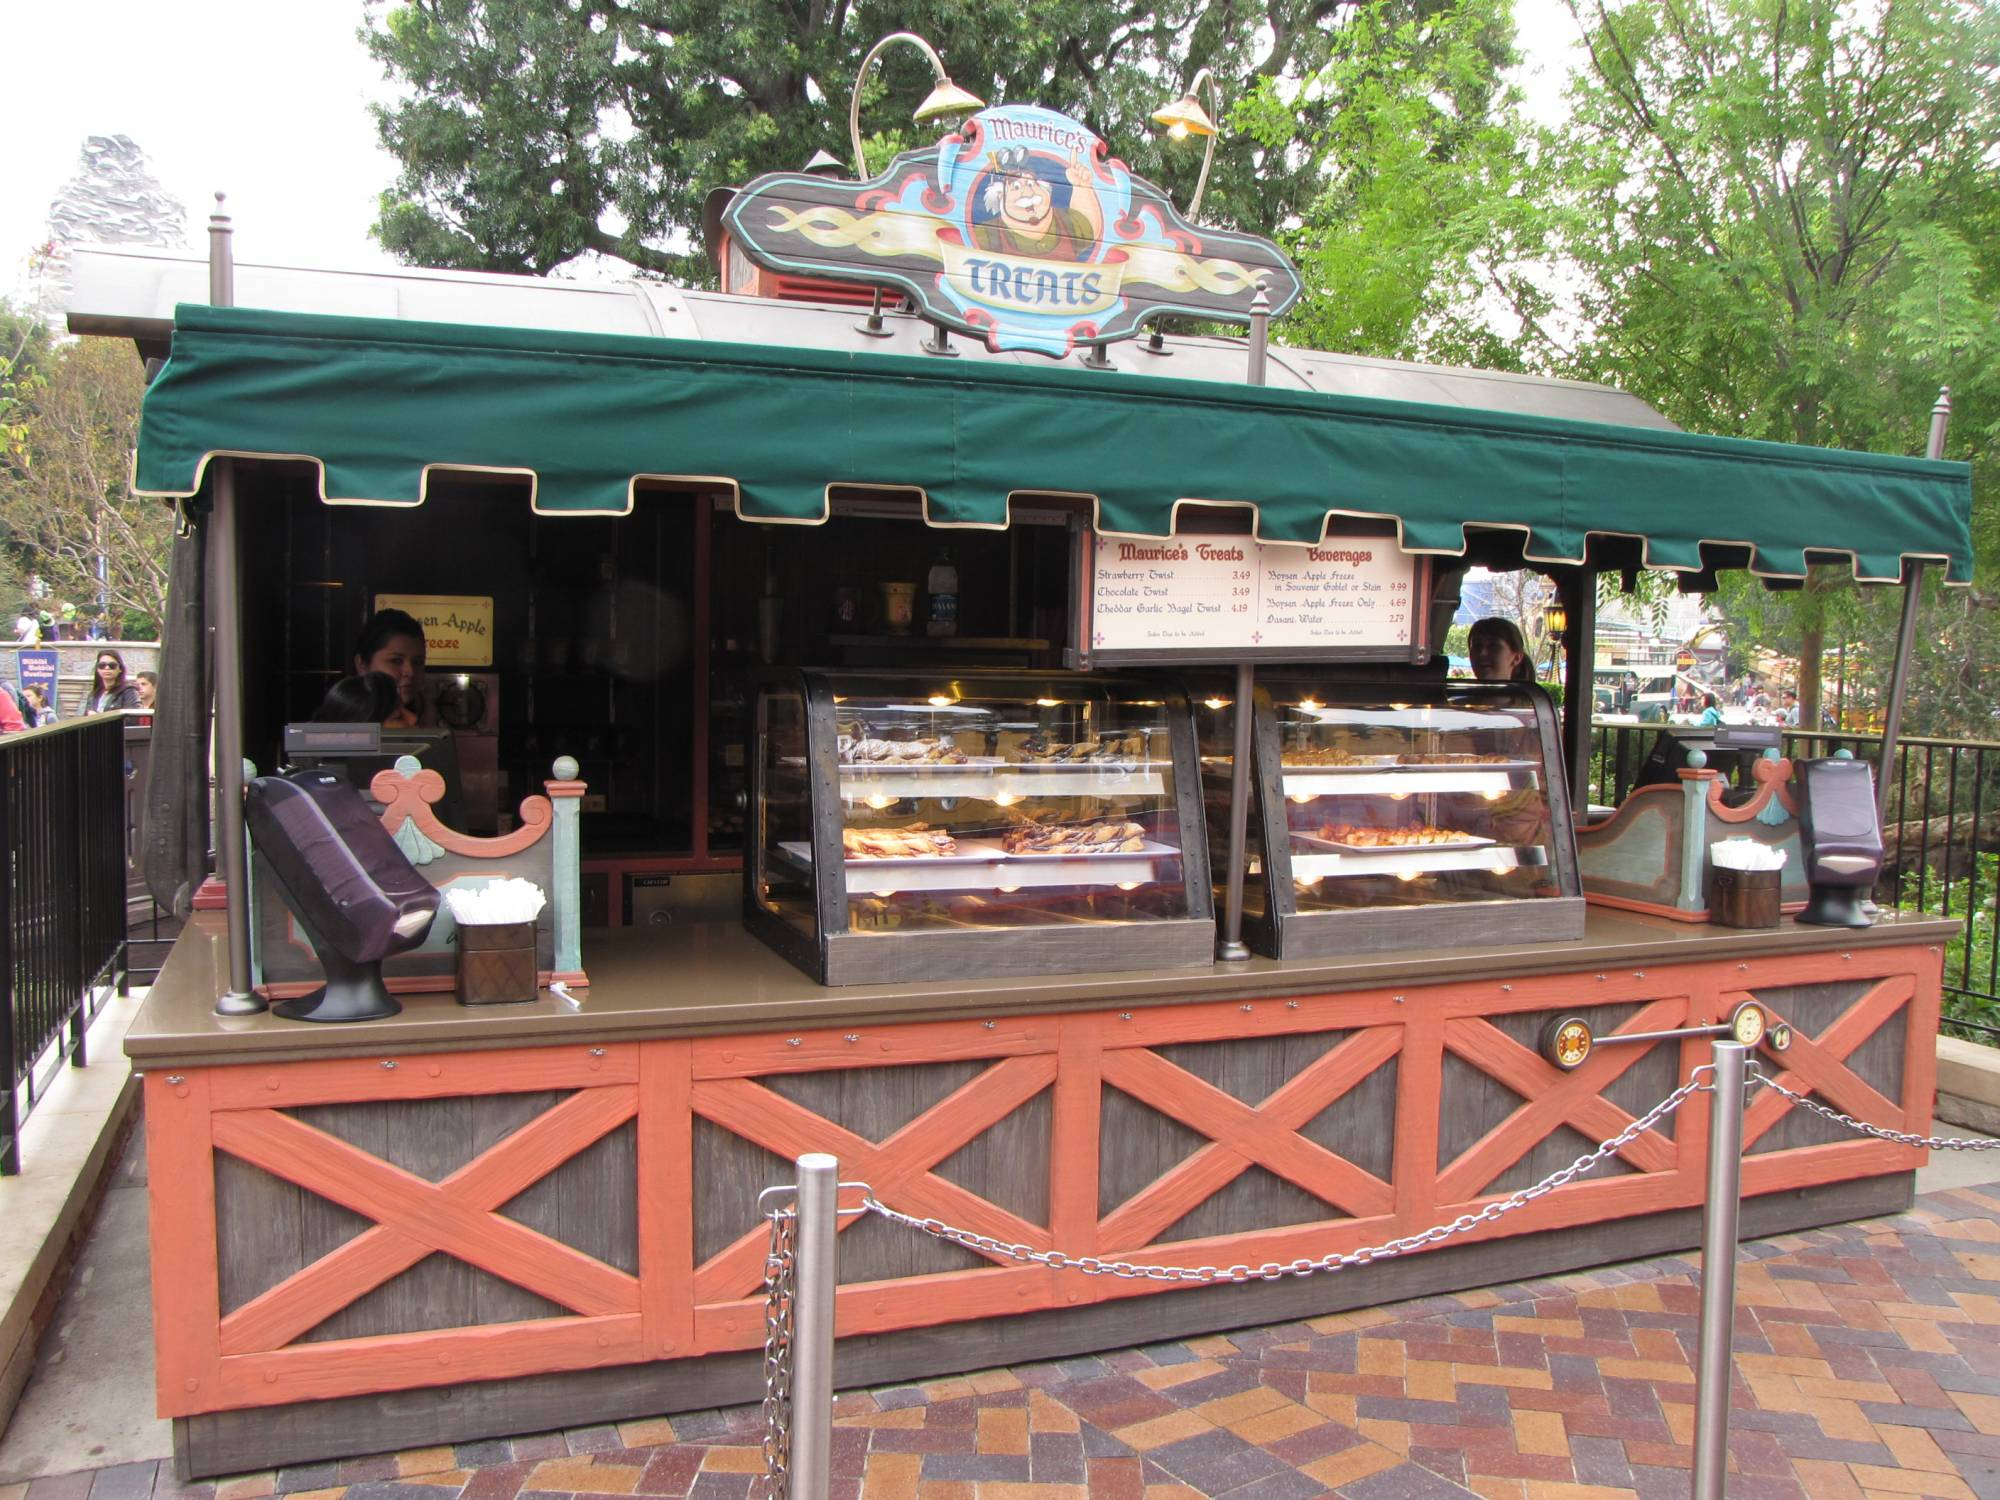 Explore snacks with a twist at Maurice's Treat at Disneyland |PassPorter.com